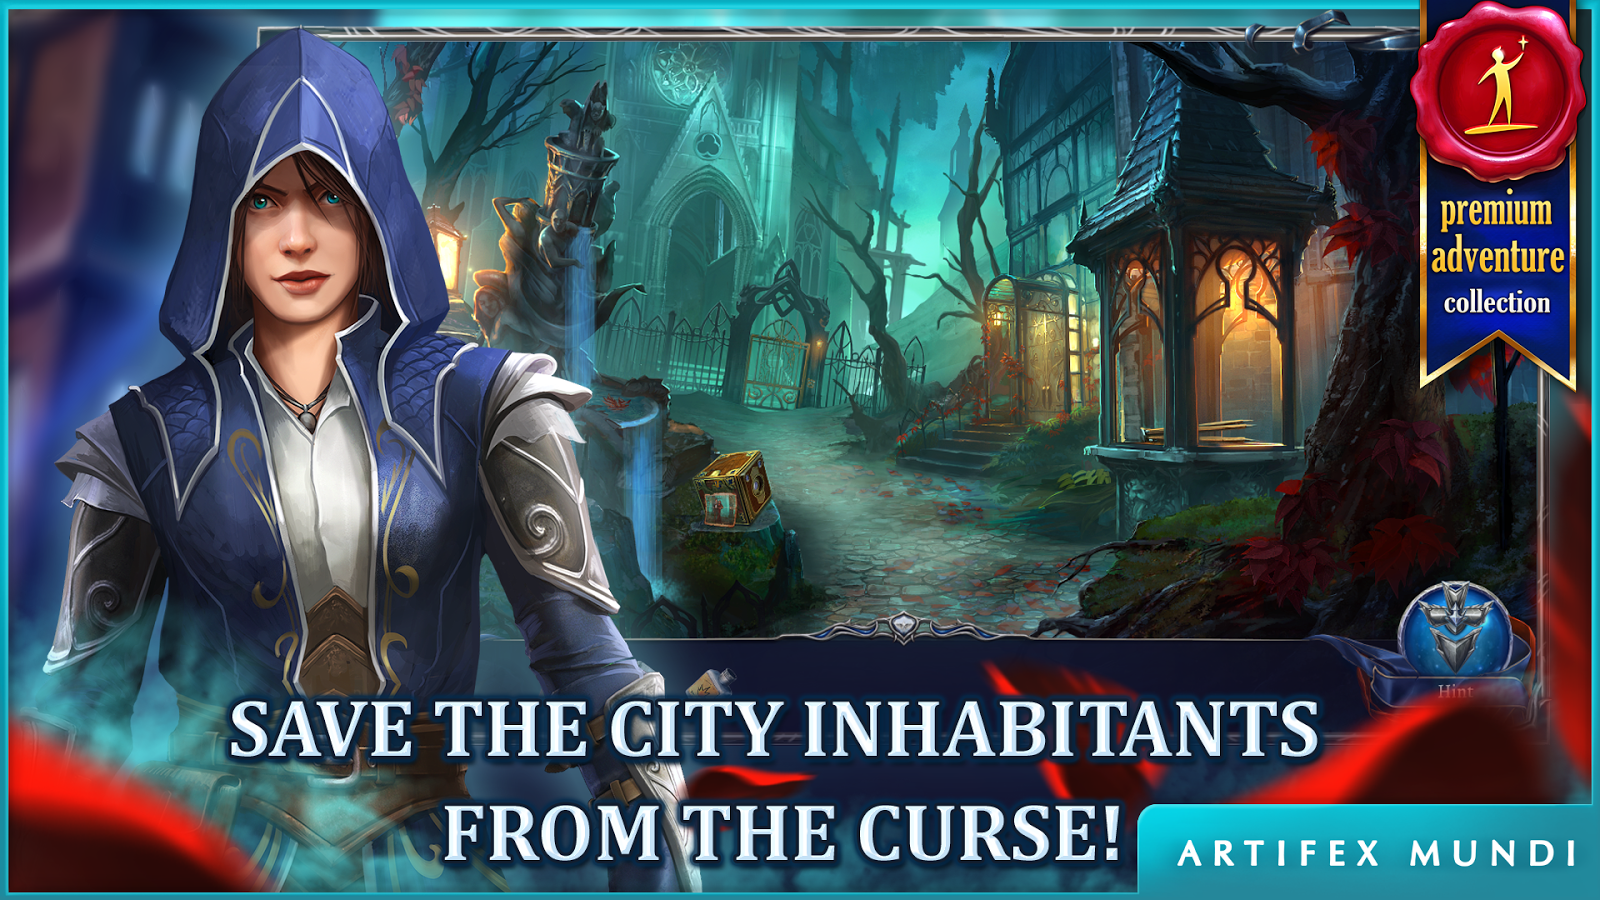 Grim Legends 3: The Dark City Screenshot 10